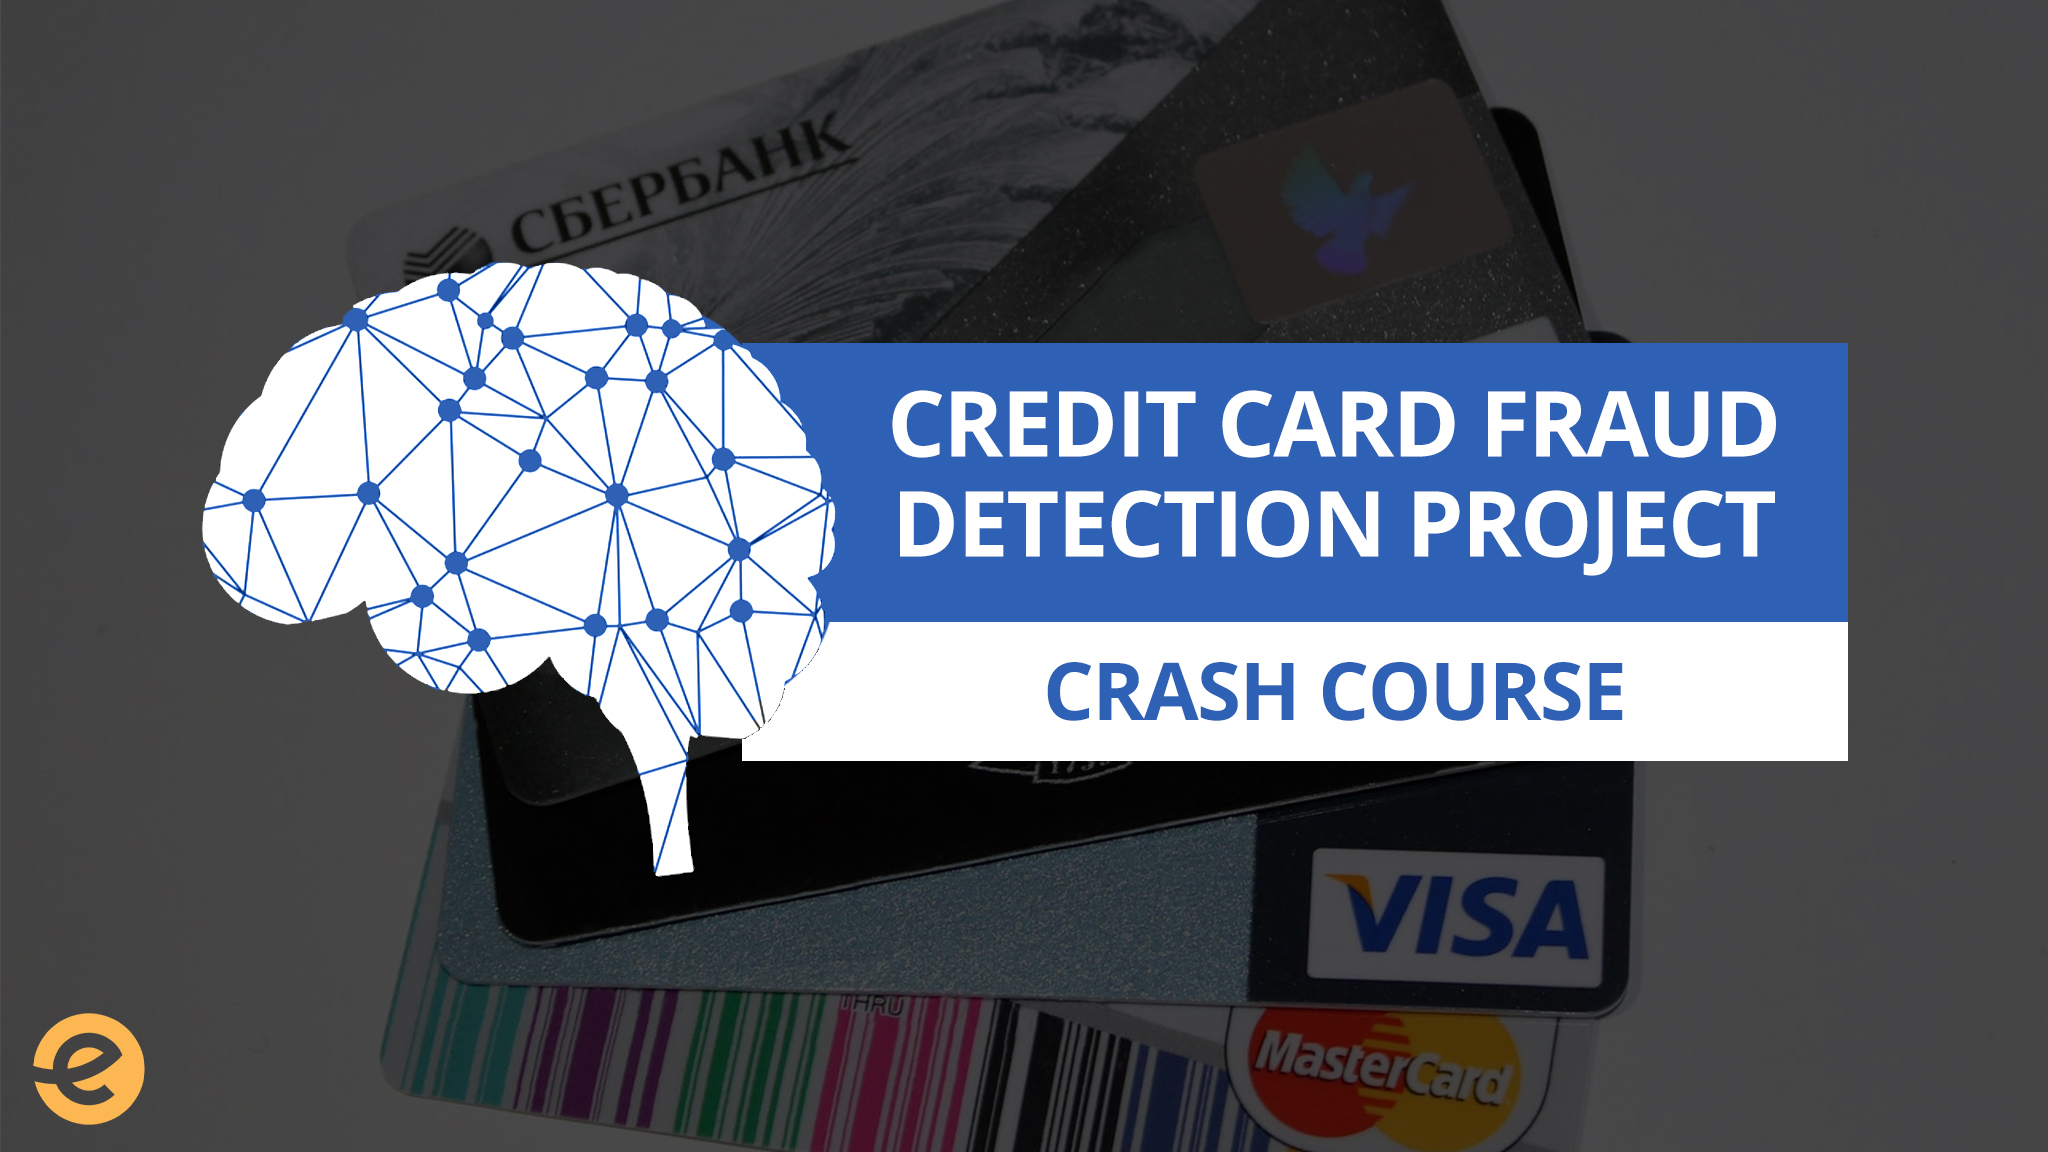 A Complete Machine Learning Project in Credit Card Detection with Exceeding Accuracy!